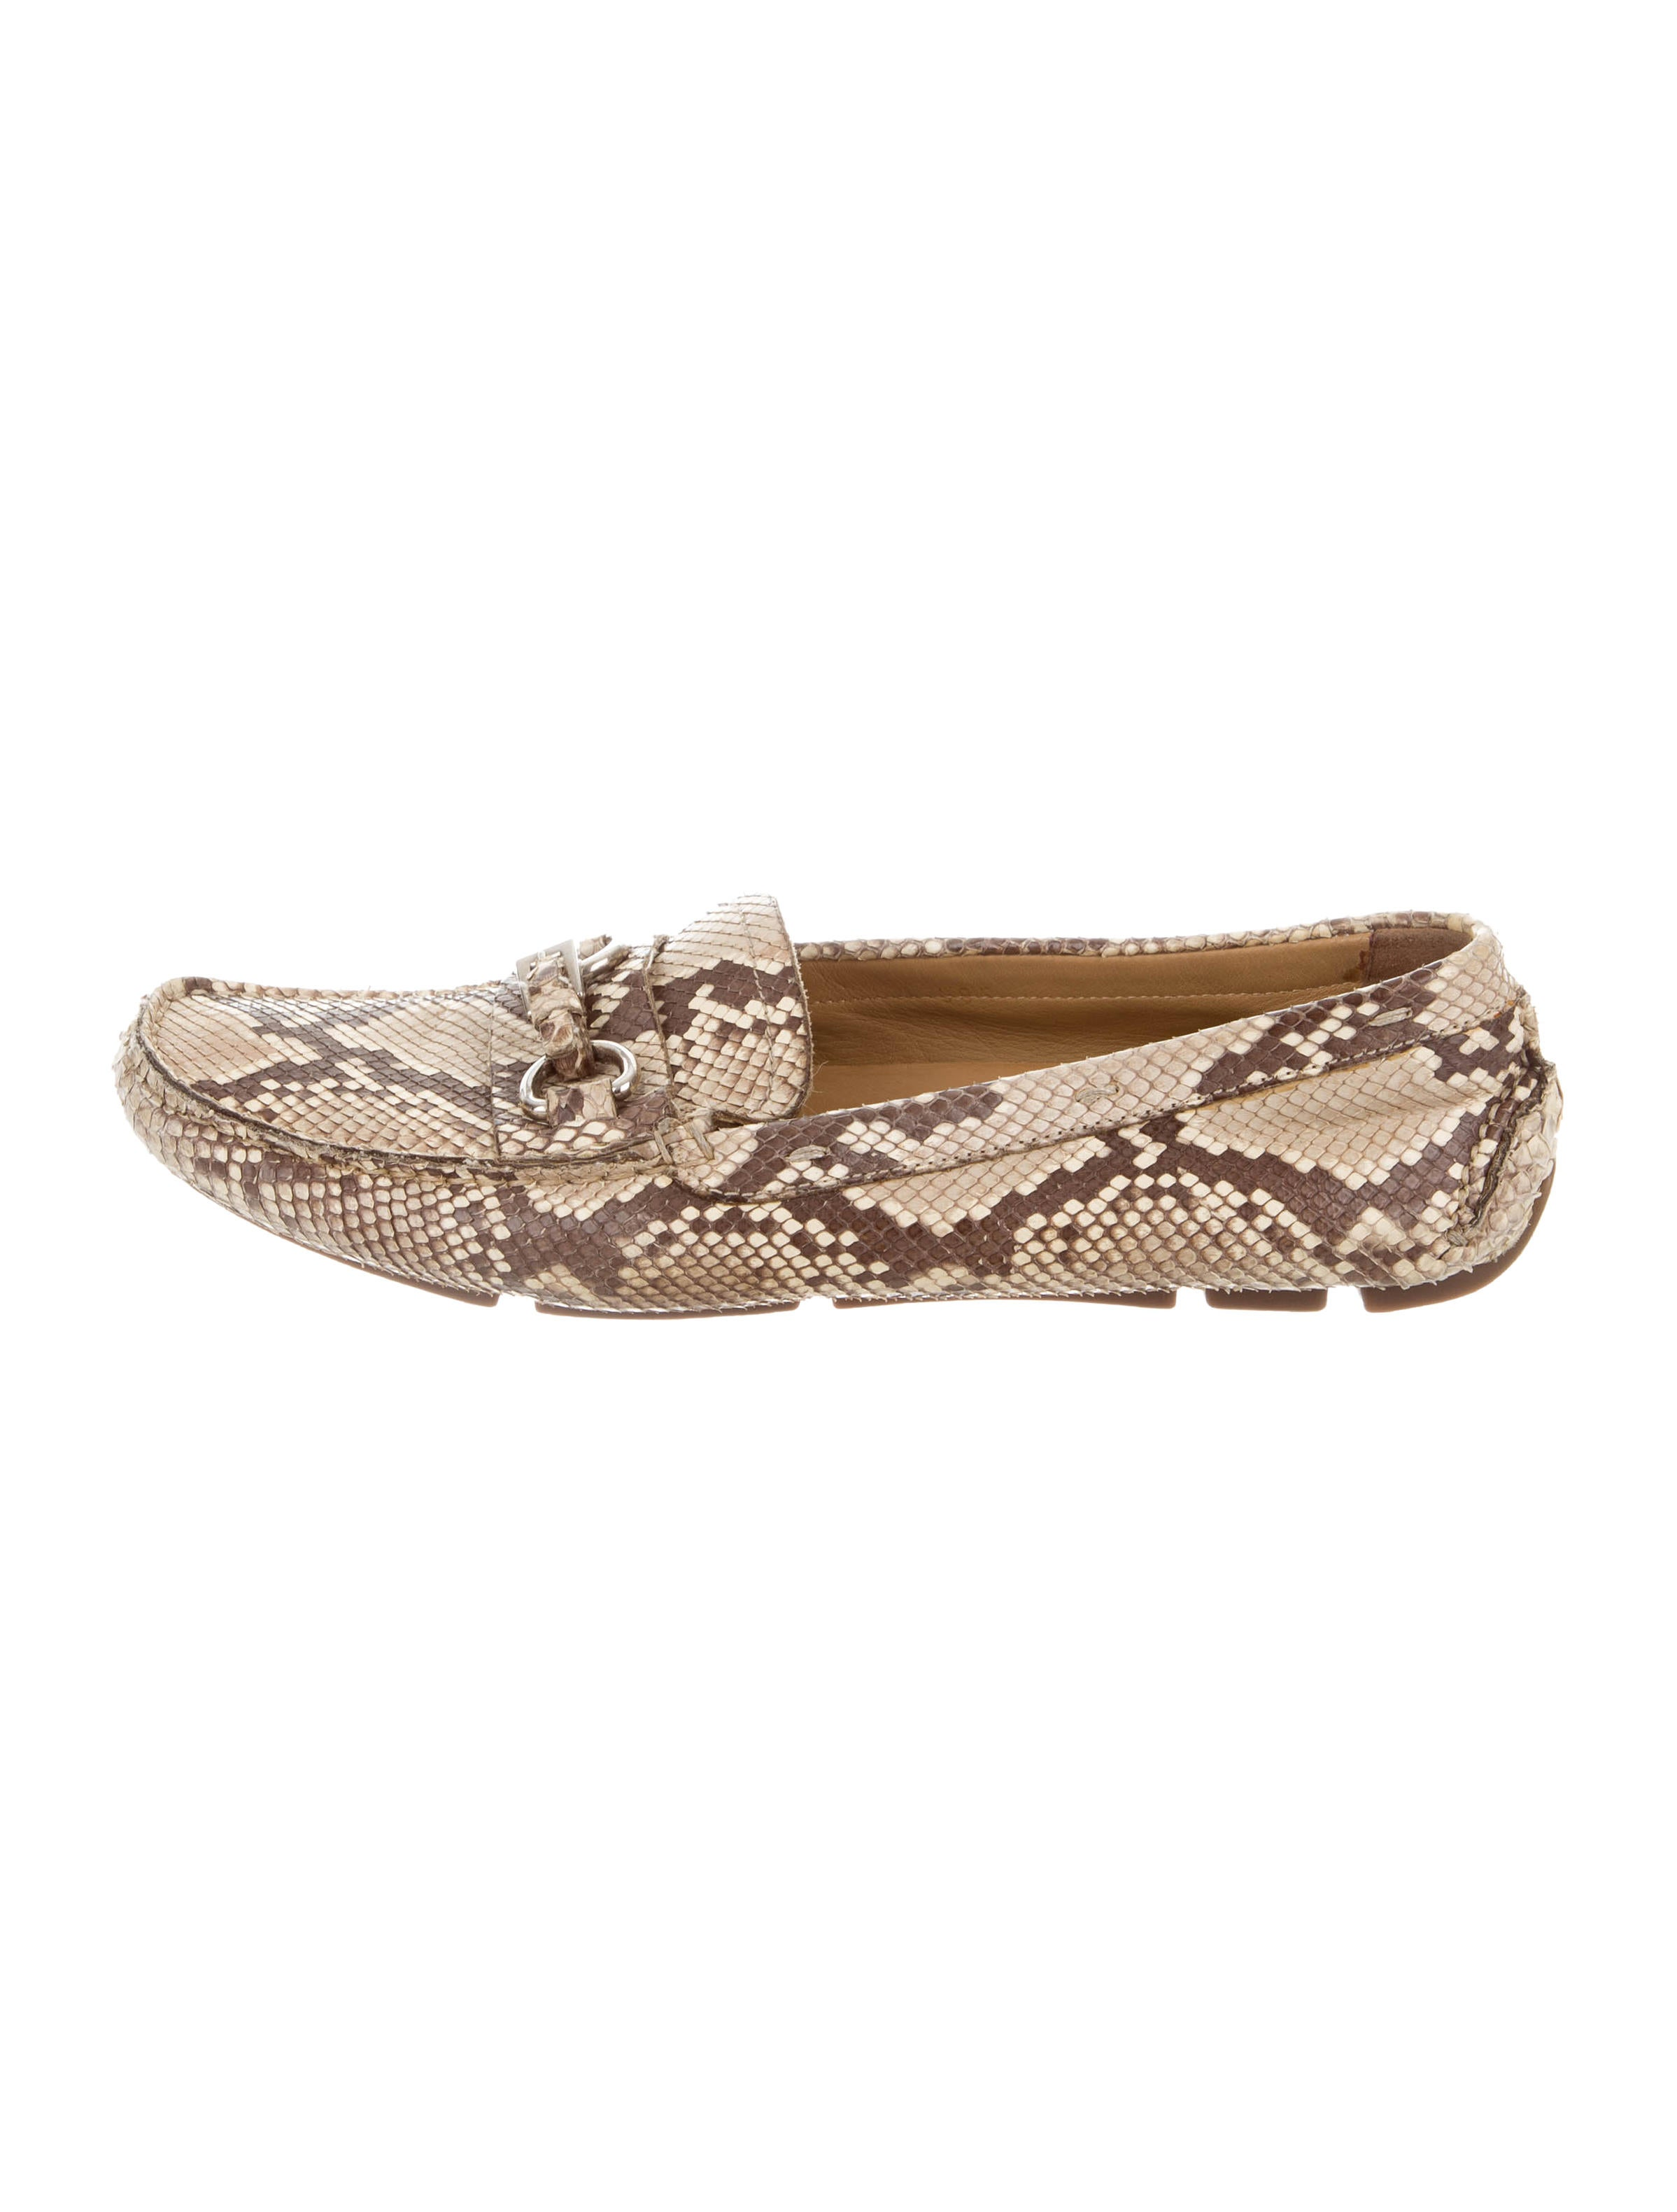 Prada Snakeskin Buckle-Accented Loafers buy cheap low shipping fee fOp87clg